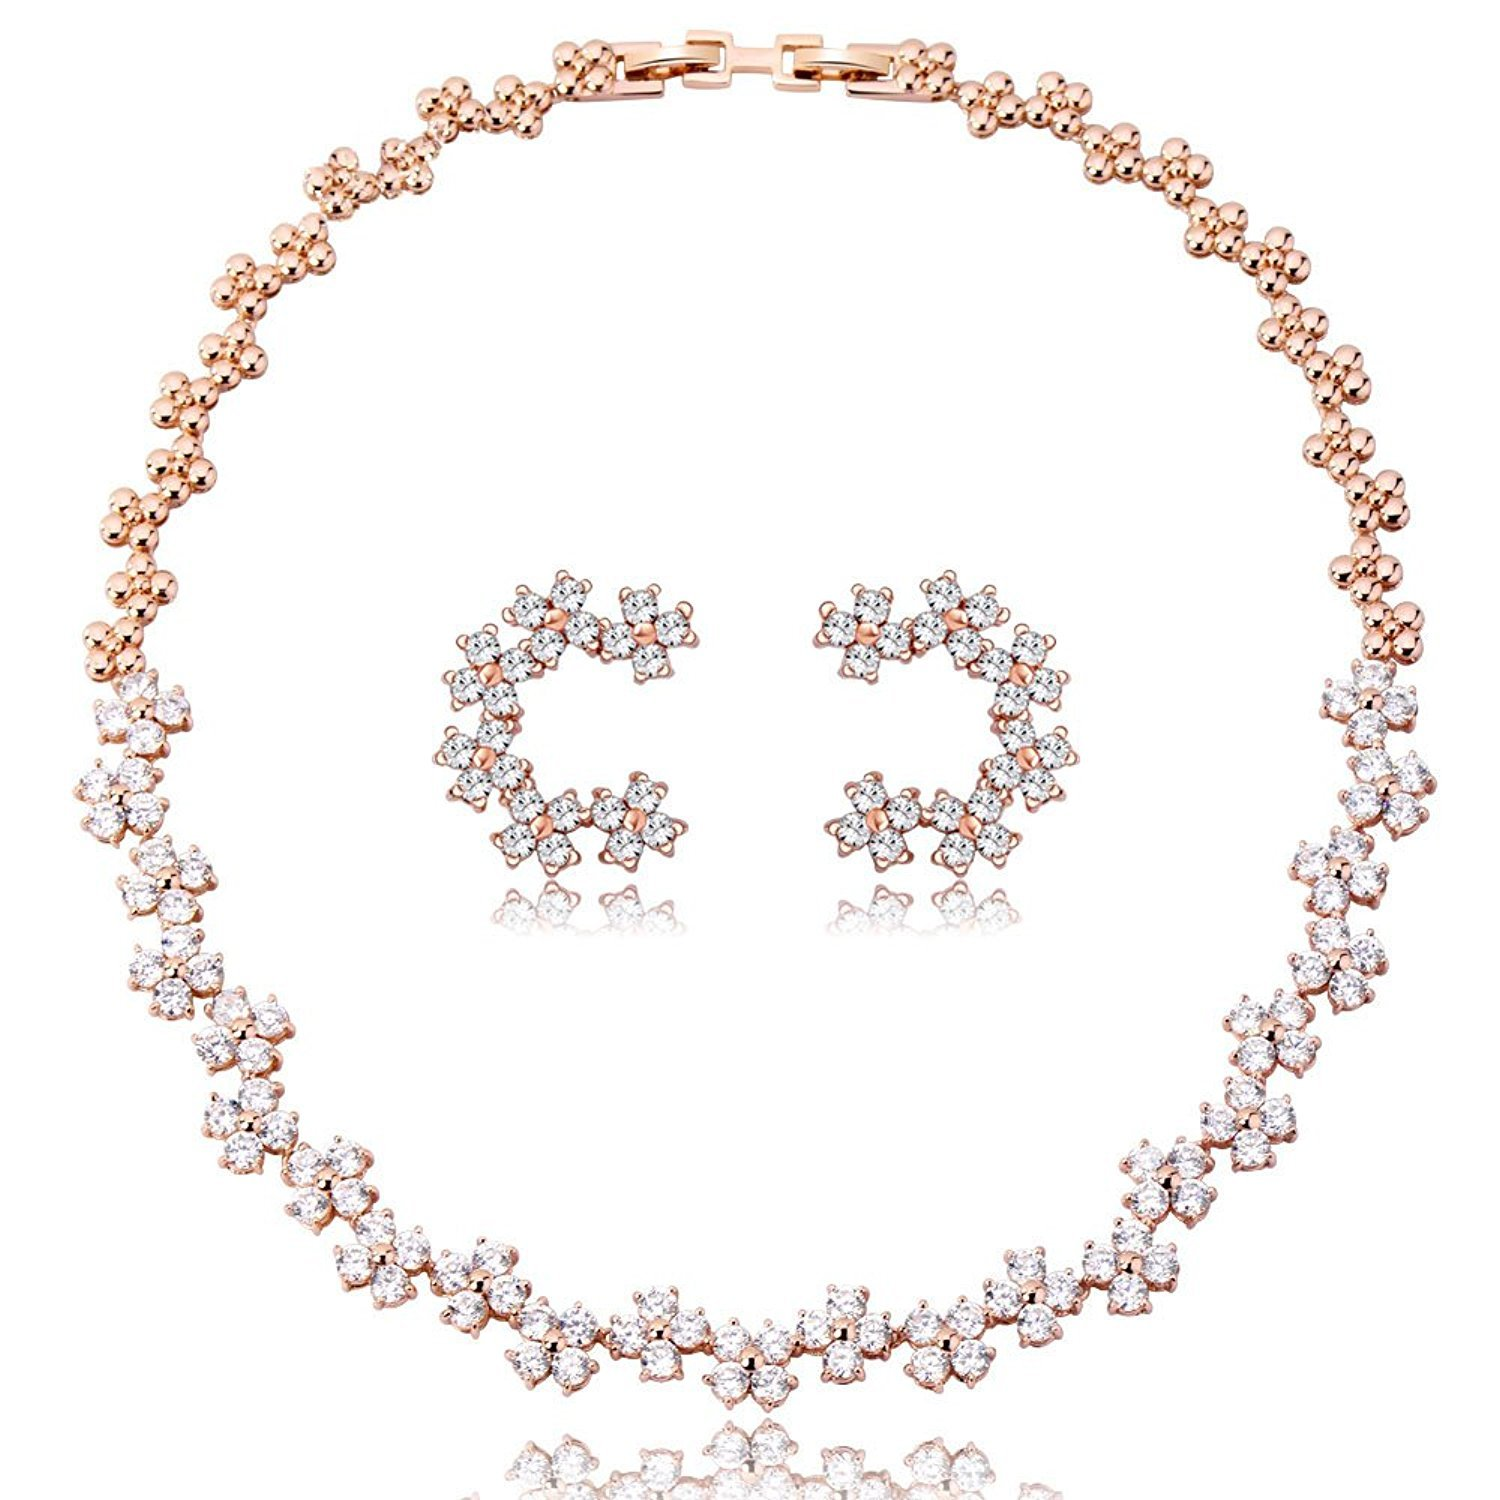 IUHA Austrian Cryatals Princess style Eye-catching Statement Necklance and Earrings Luxury Jewelry Sets Party Wedding Prevent allergies Gift